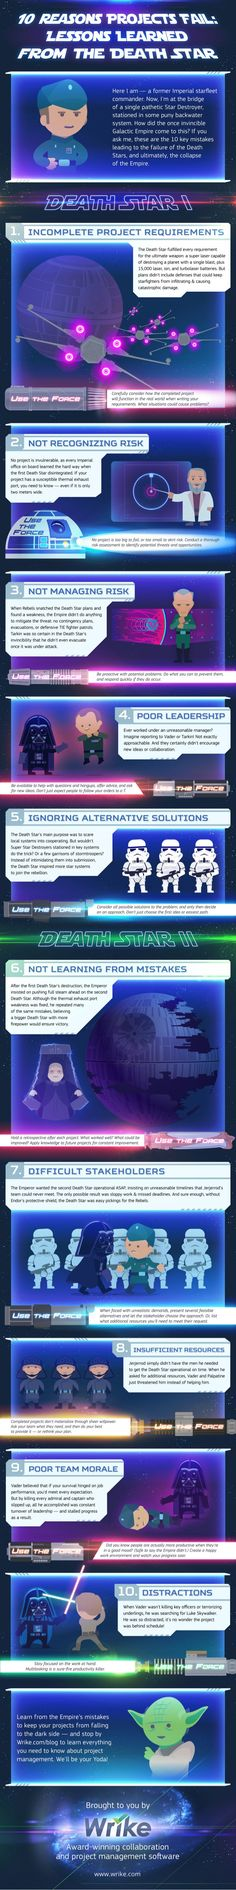 Infographic brought to you by Wrike free project planning tools The post 10 Reasons the Death Star Project Failed appeared first on Social Media Explorer. Management Software, Project Management Templates, Business Management, Management Tips, Management Development, Software Development, Jedi Meister, Projekt Manager, Death Star